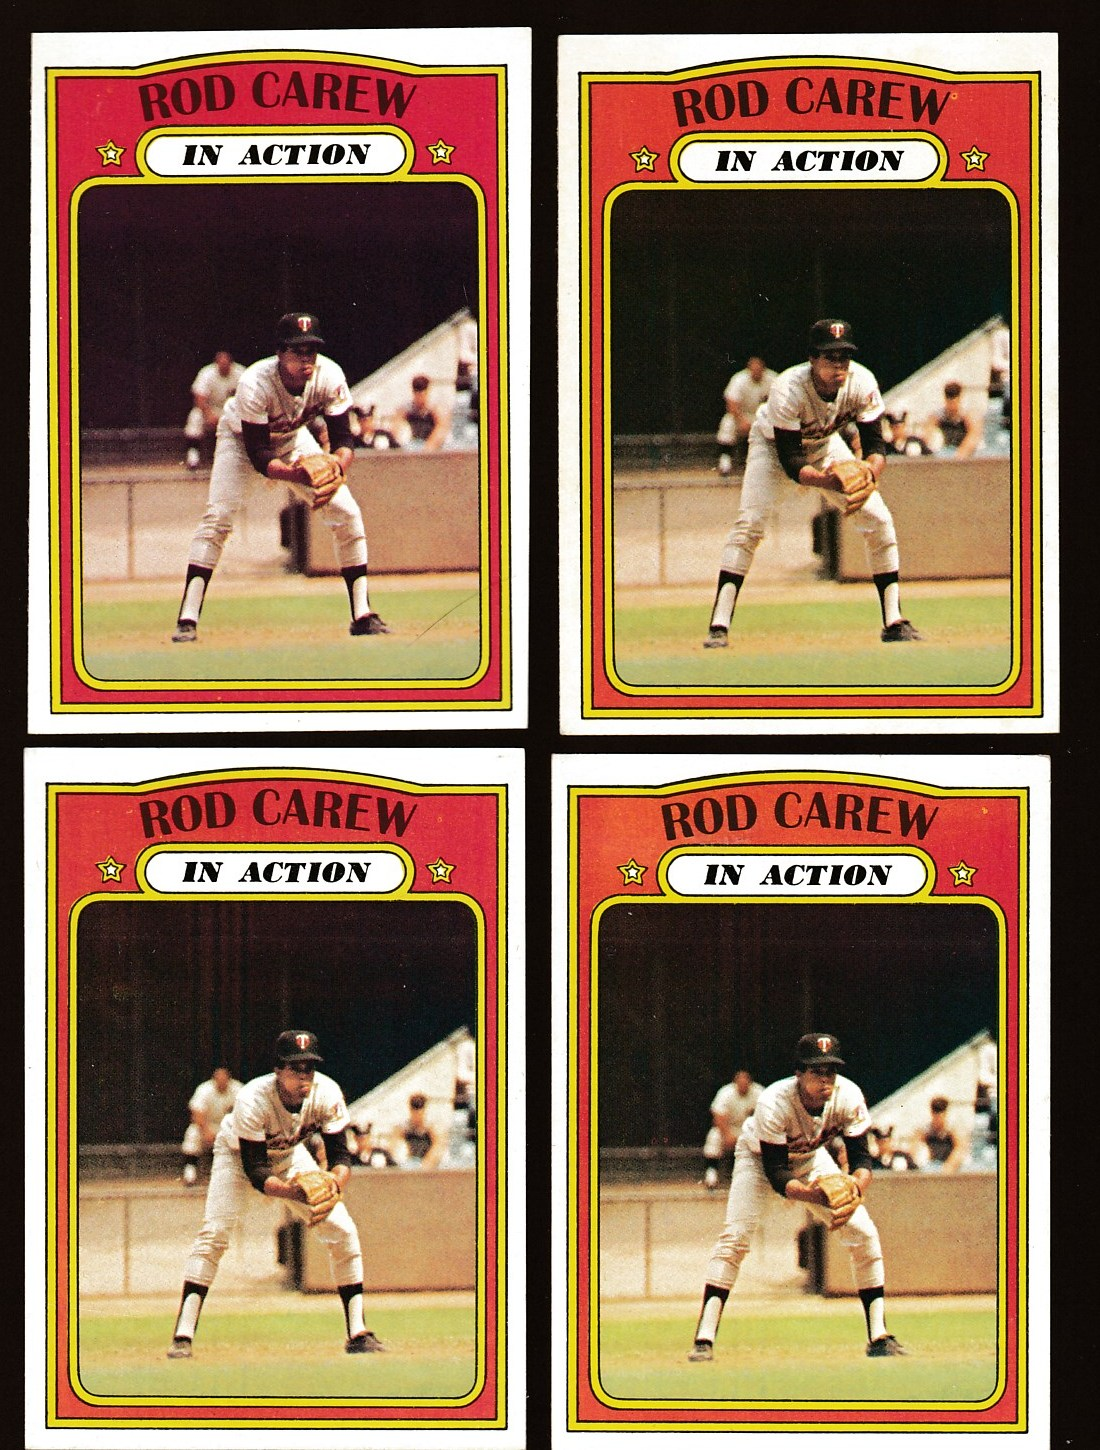 1972 Topps #696 Rod Carew In-Action SCARCE HIGH # (Twins) Baseball cards value